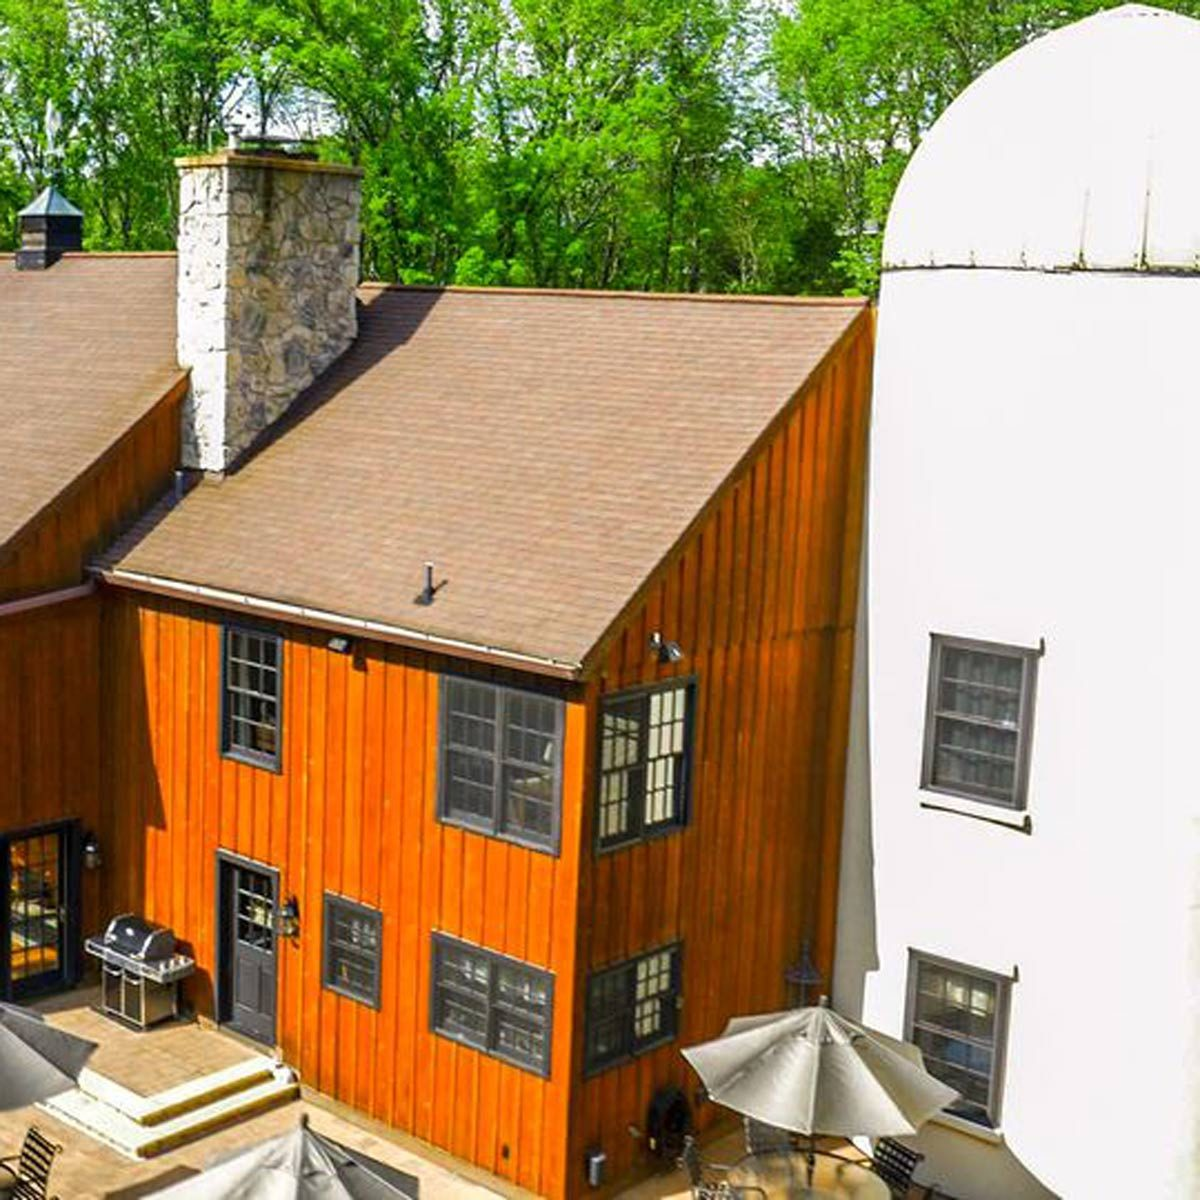 Zillows Nj: 33 Eco-Chic Houses Made From Recycled Materials